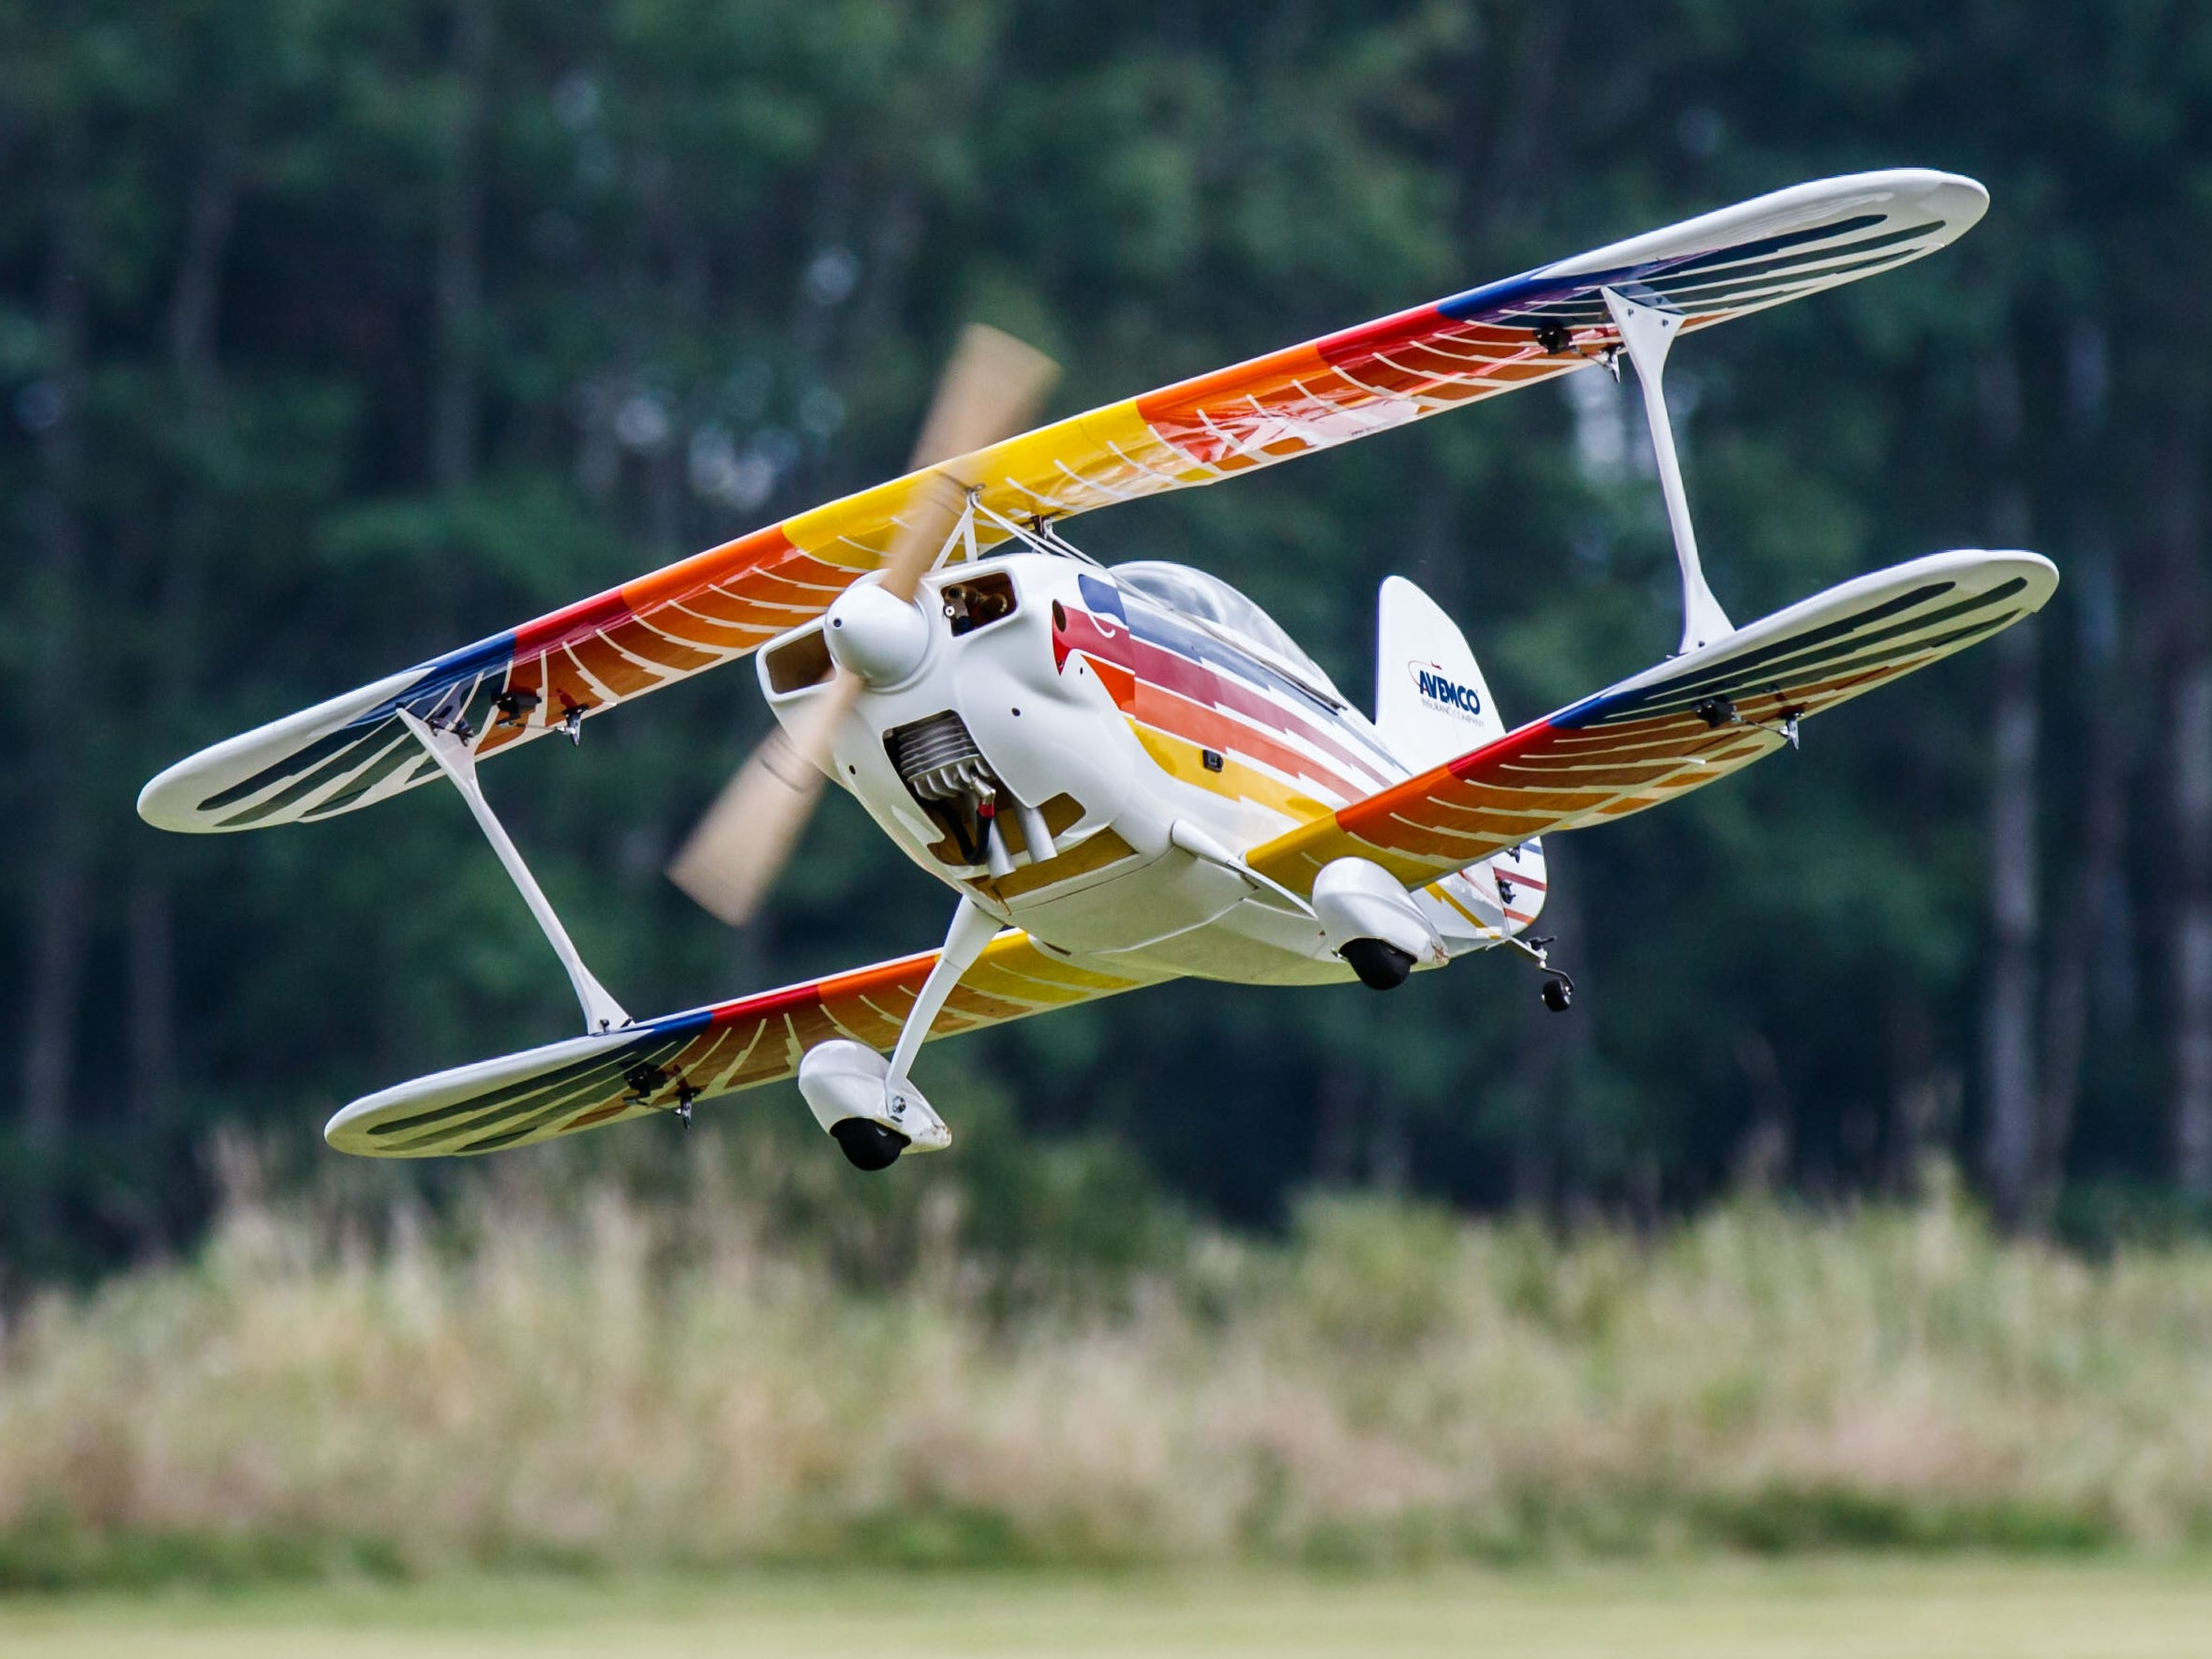 A beautifully detailed Christen Eagle II aerobatic biplane owned by Tom Jacobs of Menomonee Falls takes flight during the Flying Electrons Radio Control Airfest 2018 in Menomonee Falls on Saturday, August 25, 2018.